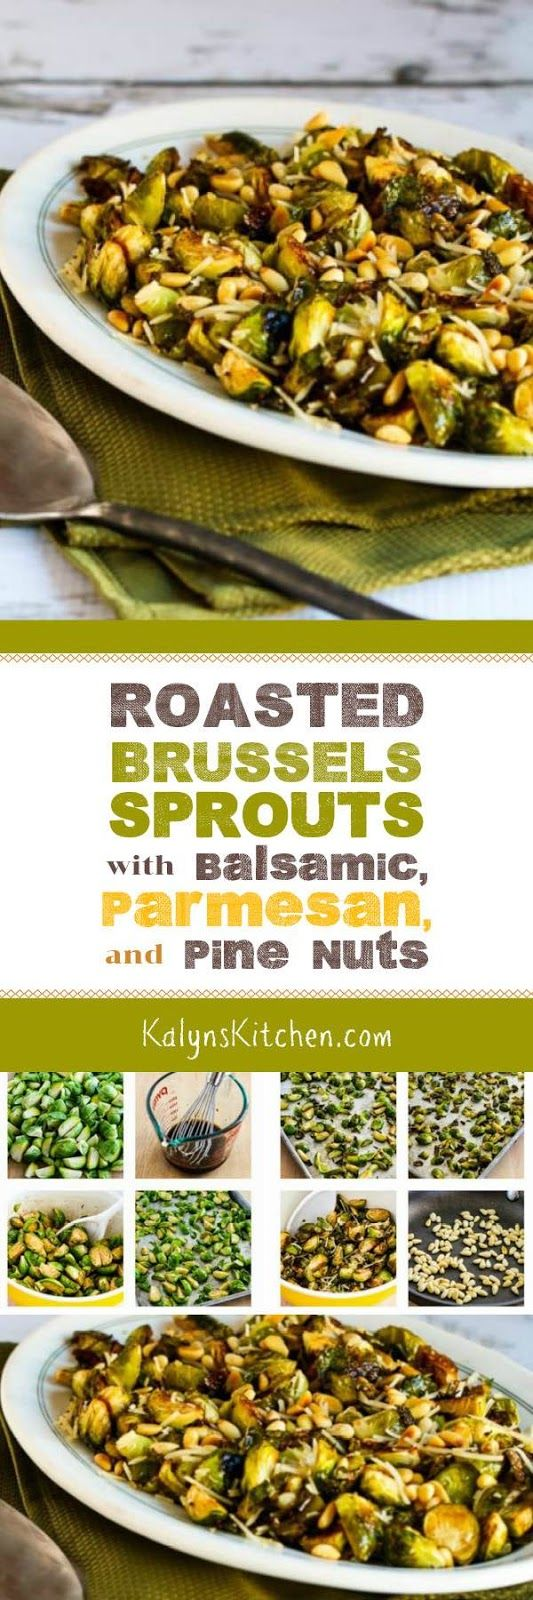 Your Guests Will Swoon Over Roasted Brussels Sprouts Recipe With Balsamic Parmesan And Pine